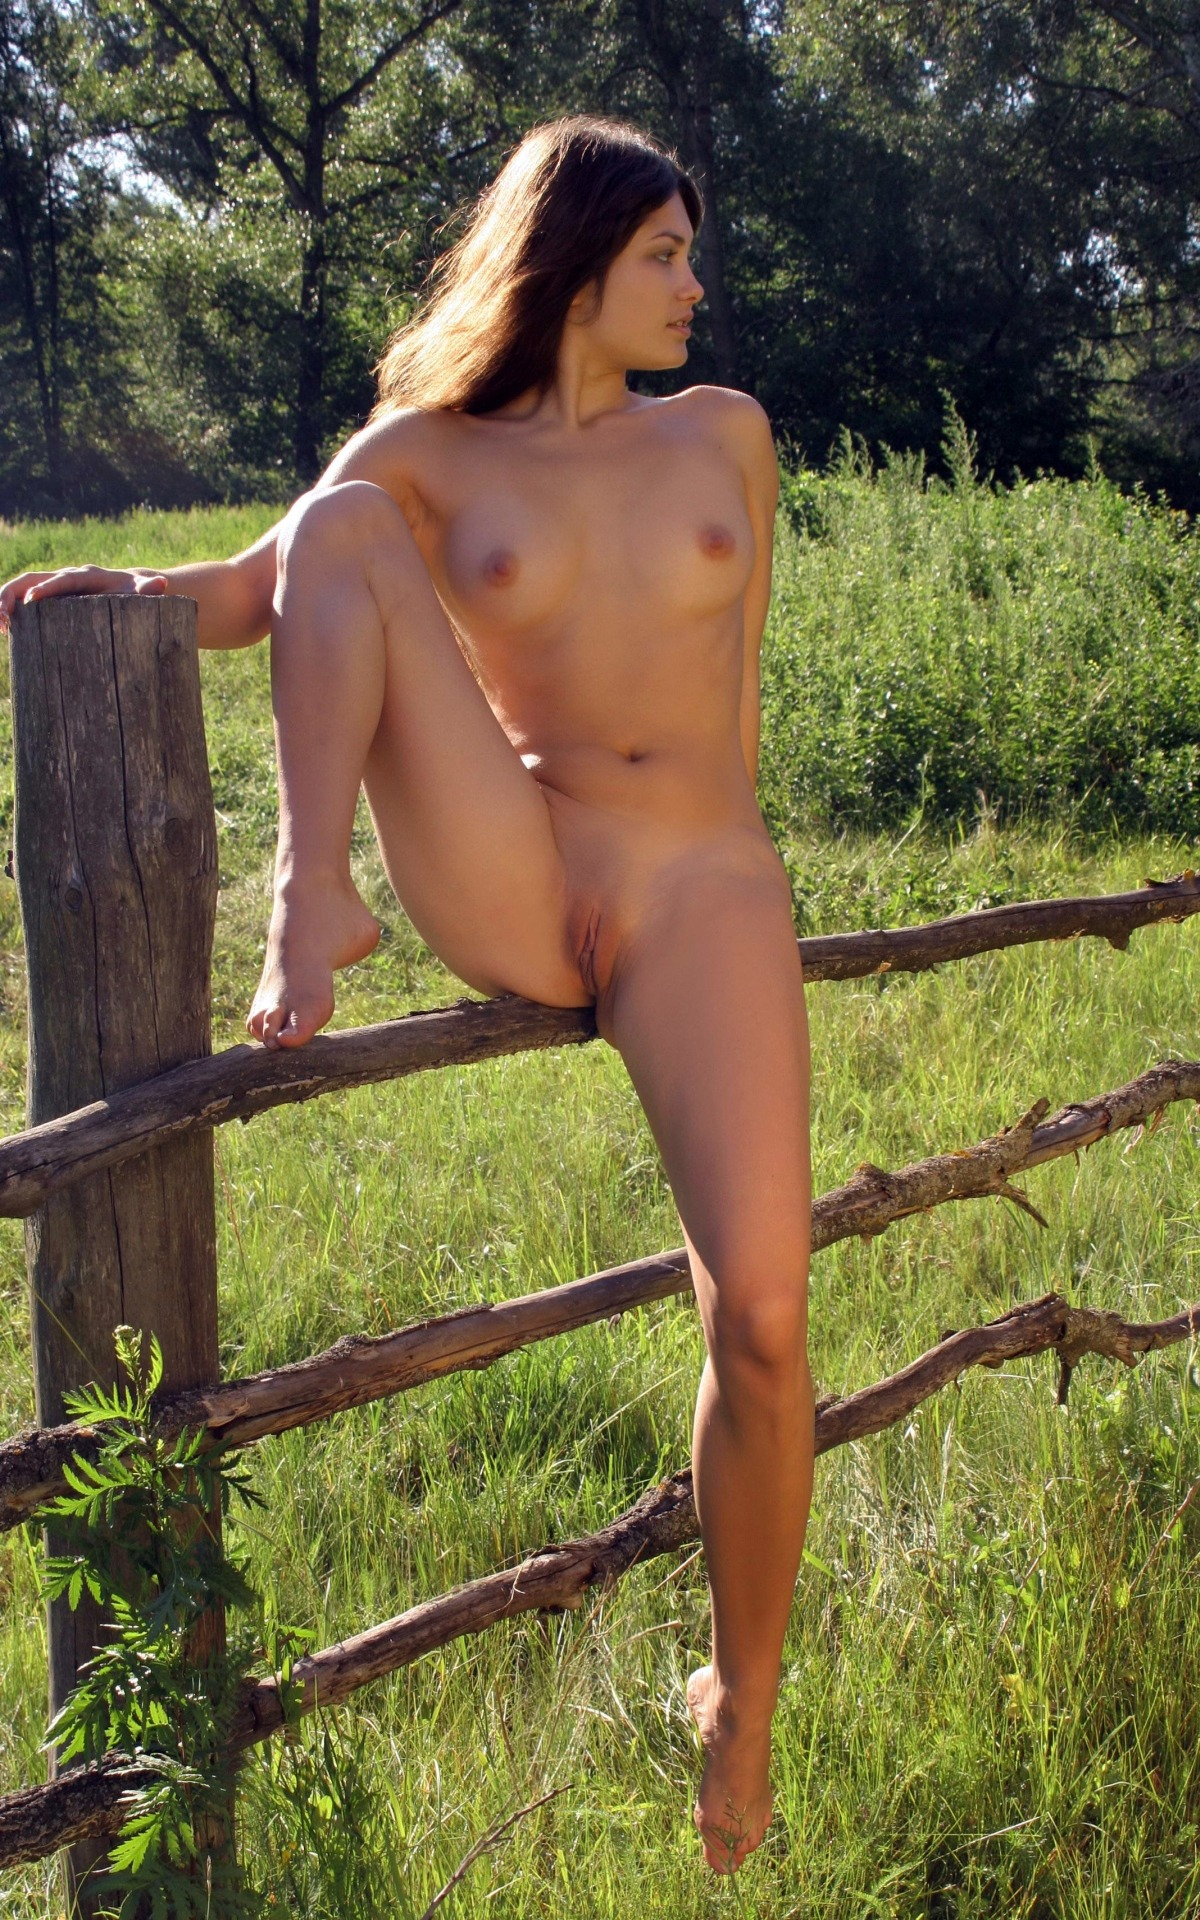 tumblr naked outdoors